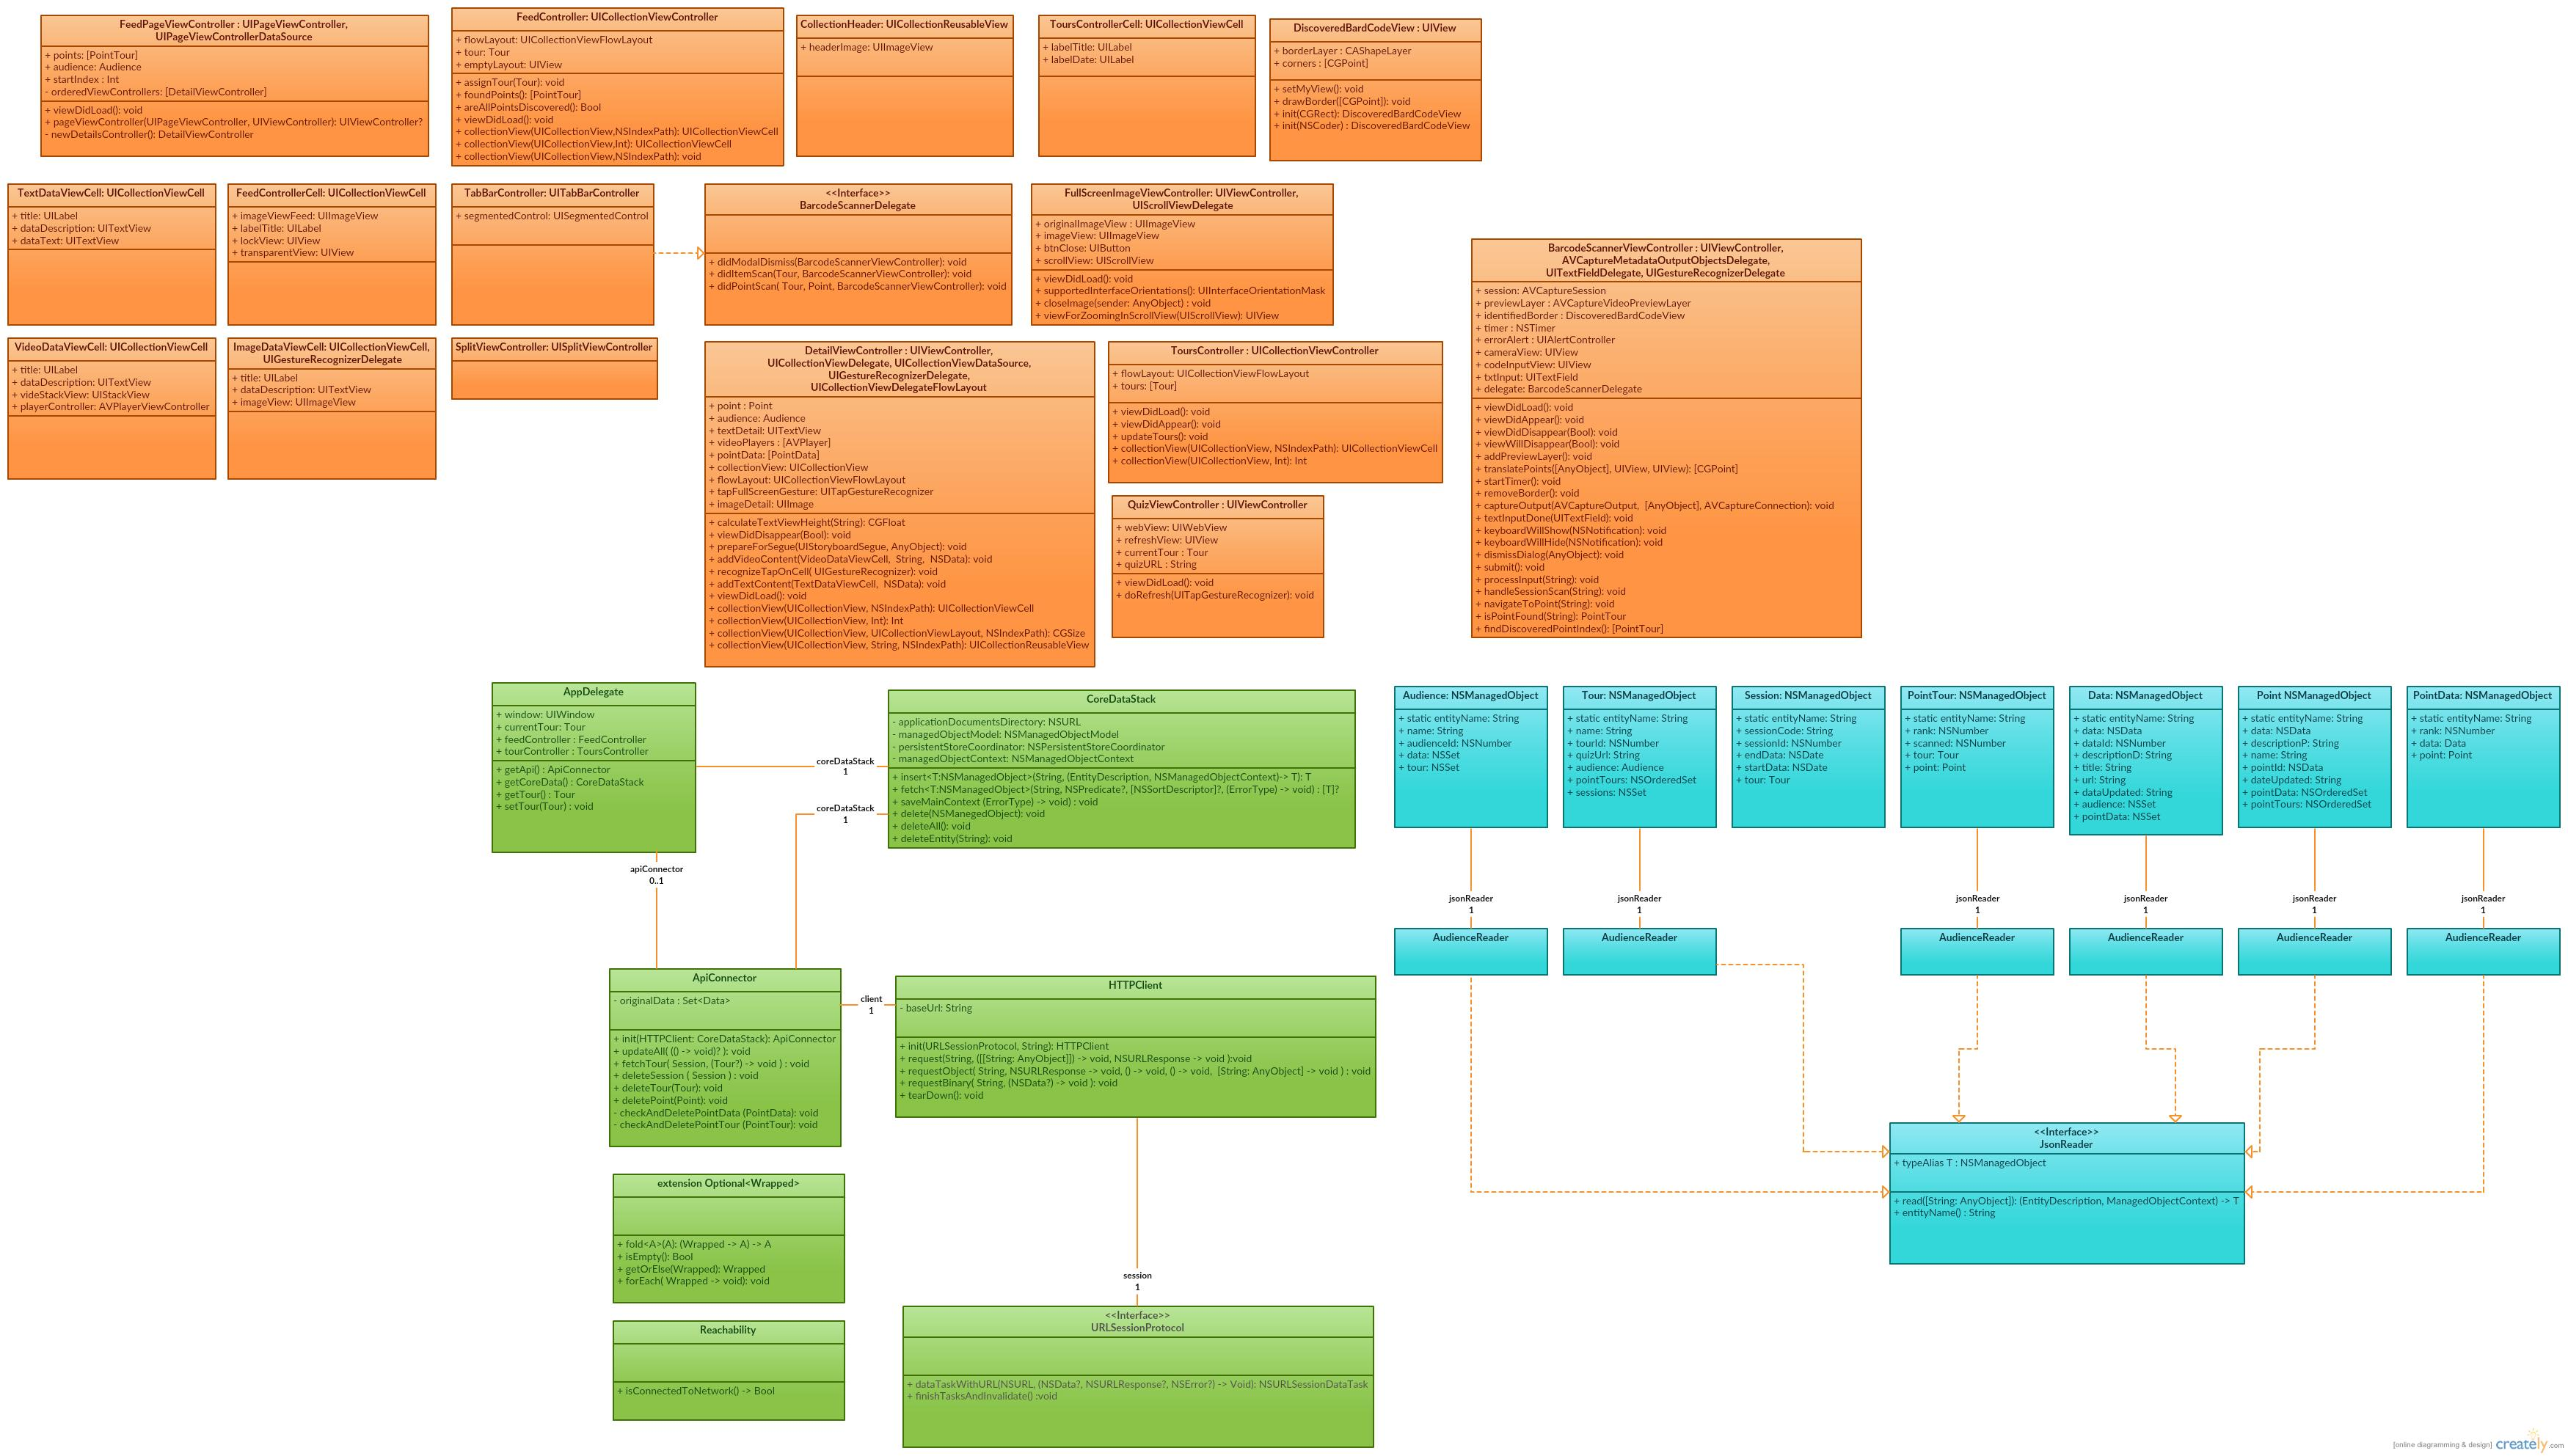 Class diagram kylehodgettshitour ios wiki github ios class diagram ccuart Image collections